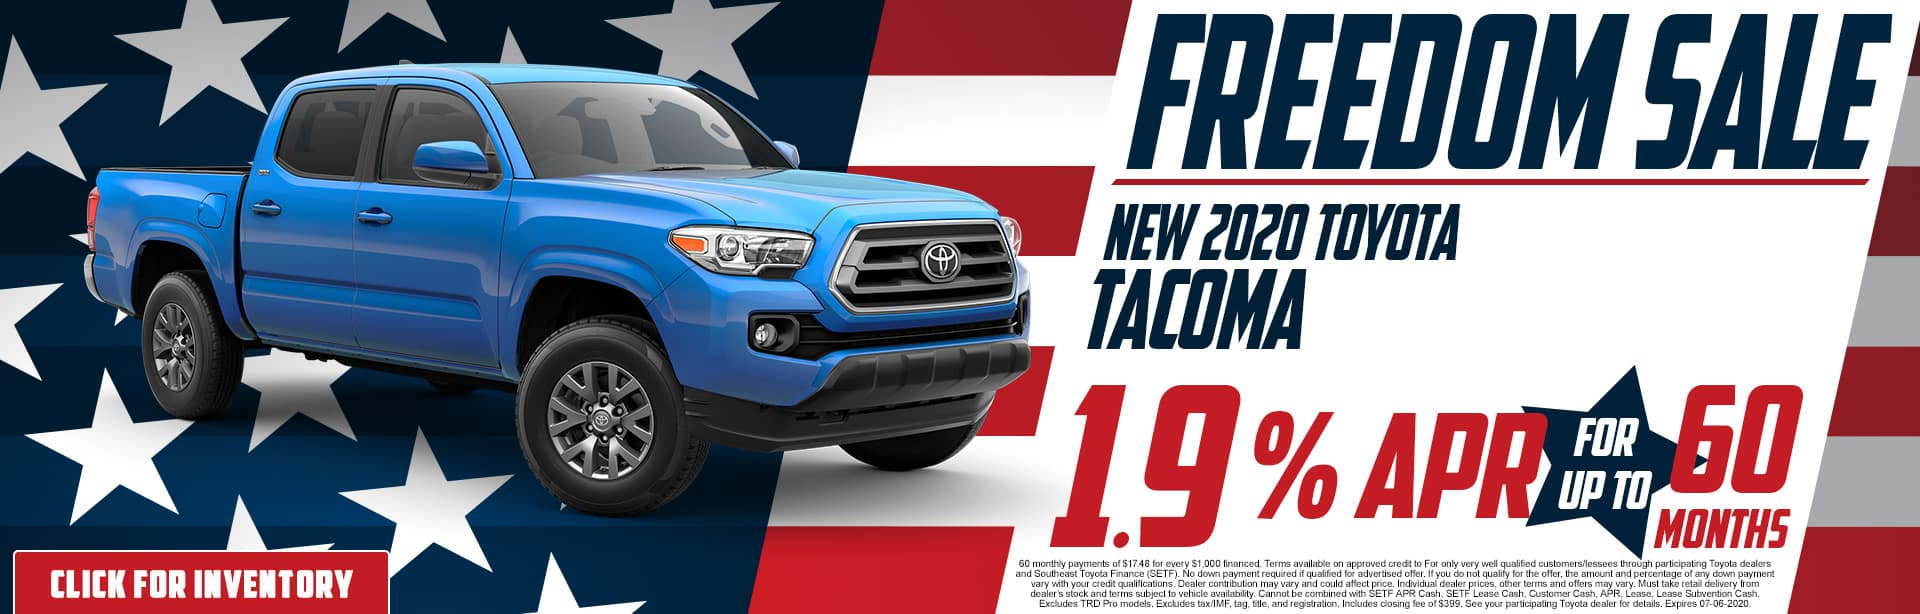 2020 Toyota Tacoma | 1.9% APR for 60 Months